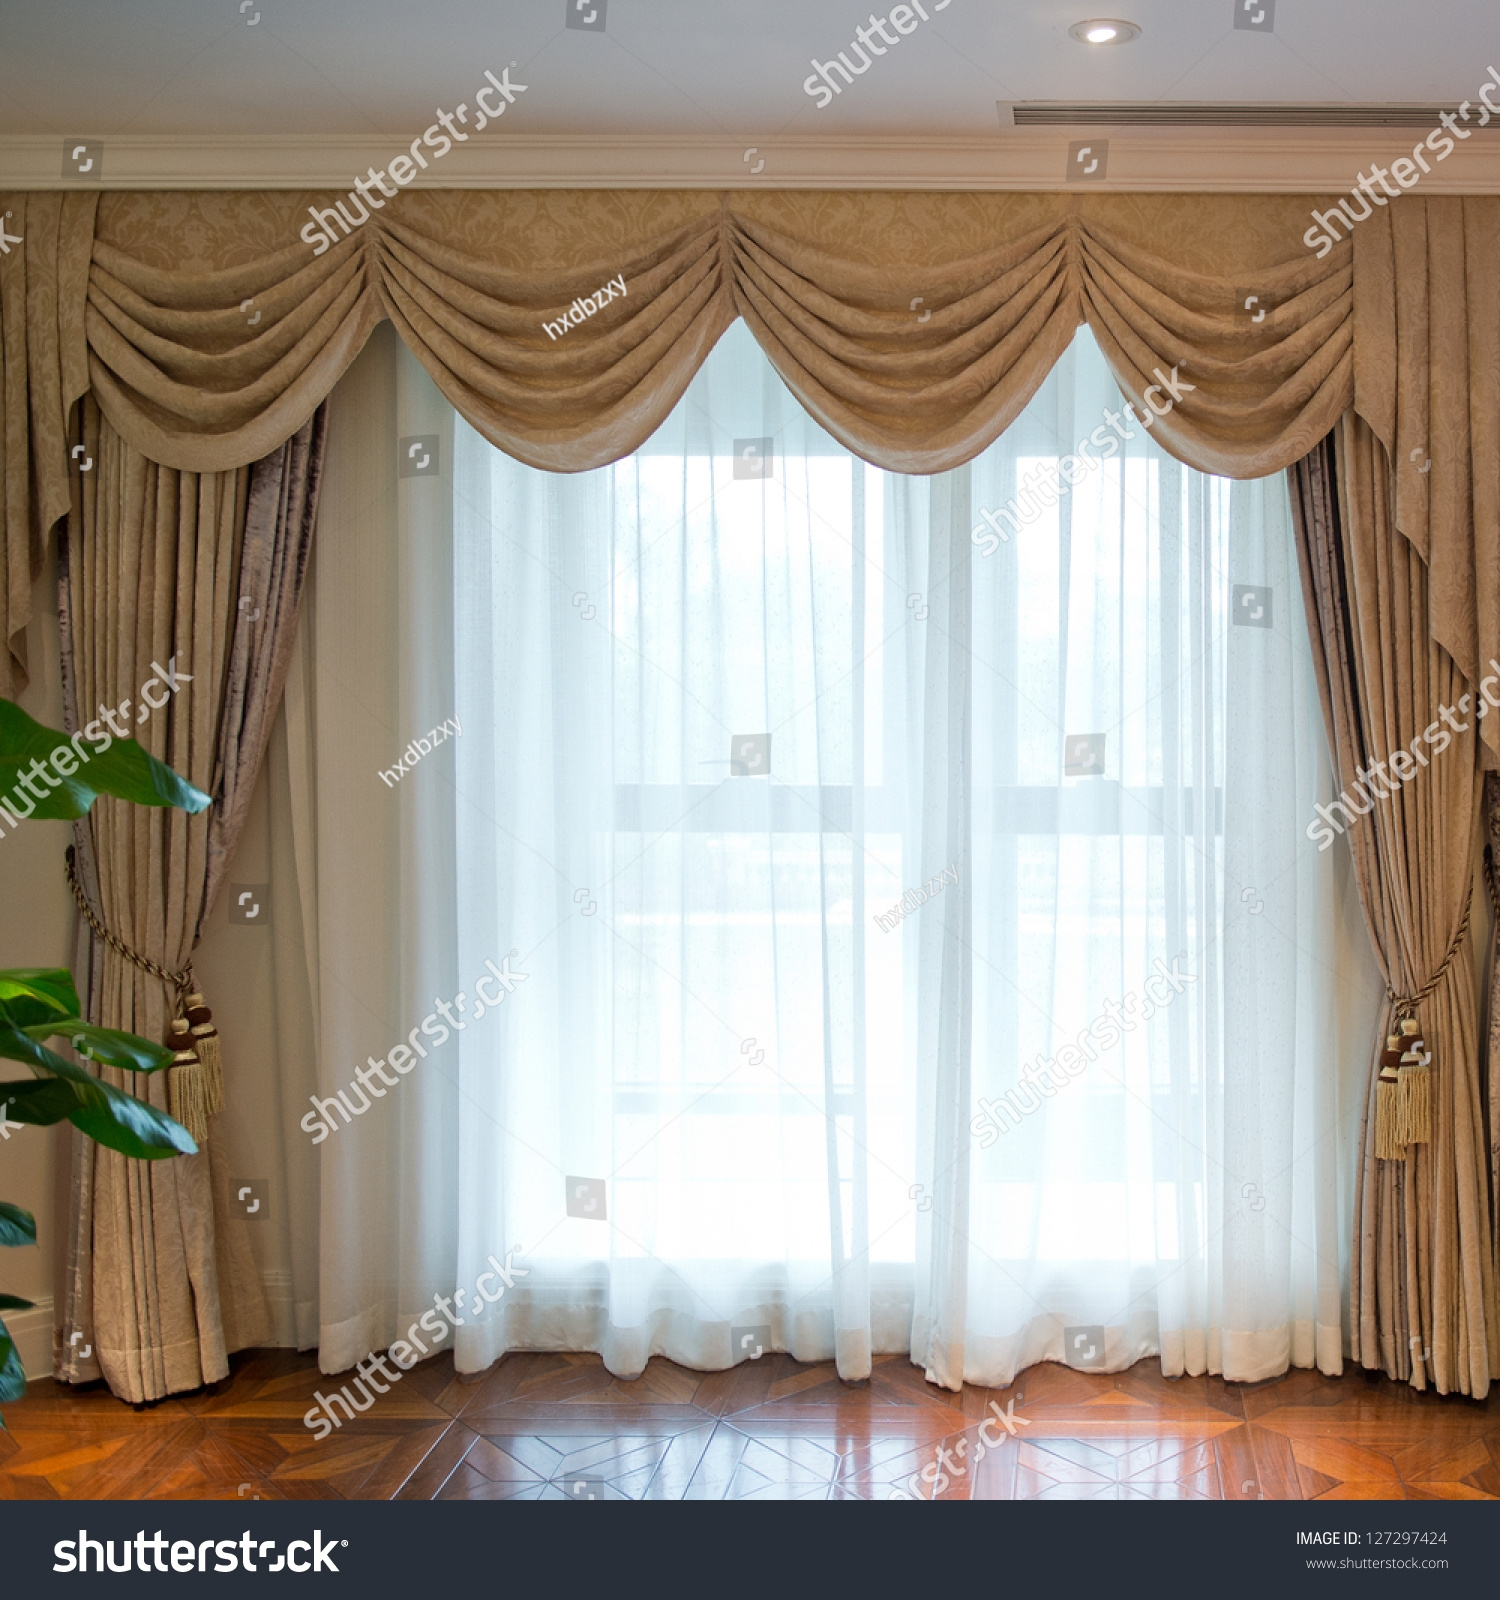 Luxury Curtain Copyspace Middle Stock Photo 127297424 Shutterstock Within Luxury Curtains (Image 9 of 15)